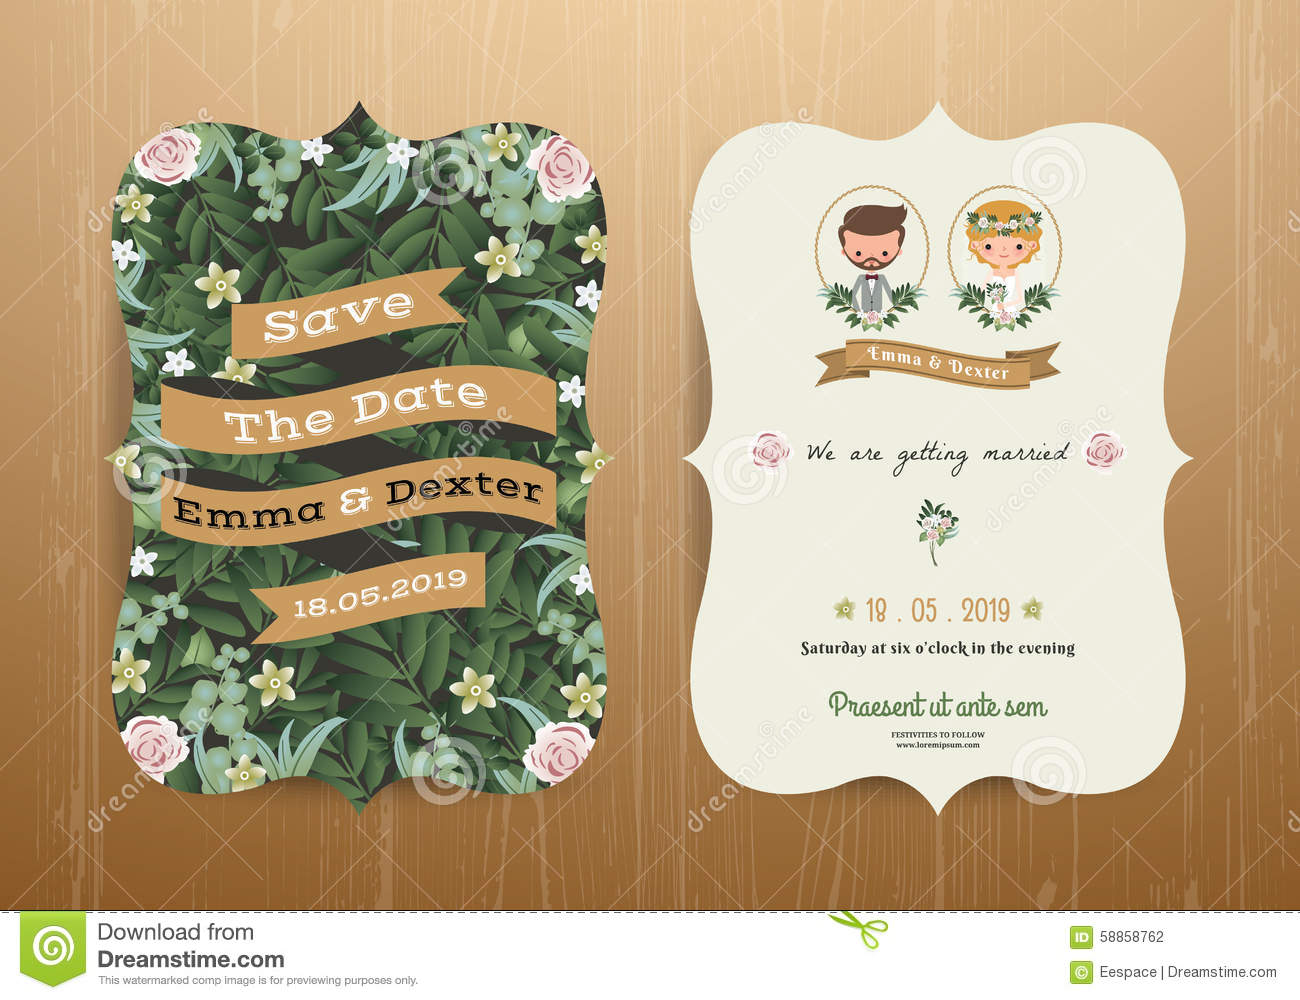 Wedding Invitations Made With Cricut with luxury invitation design